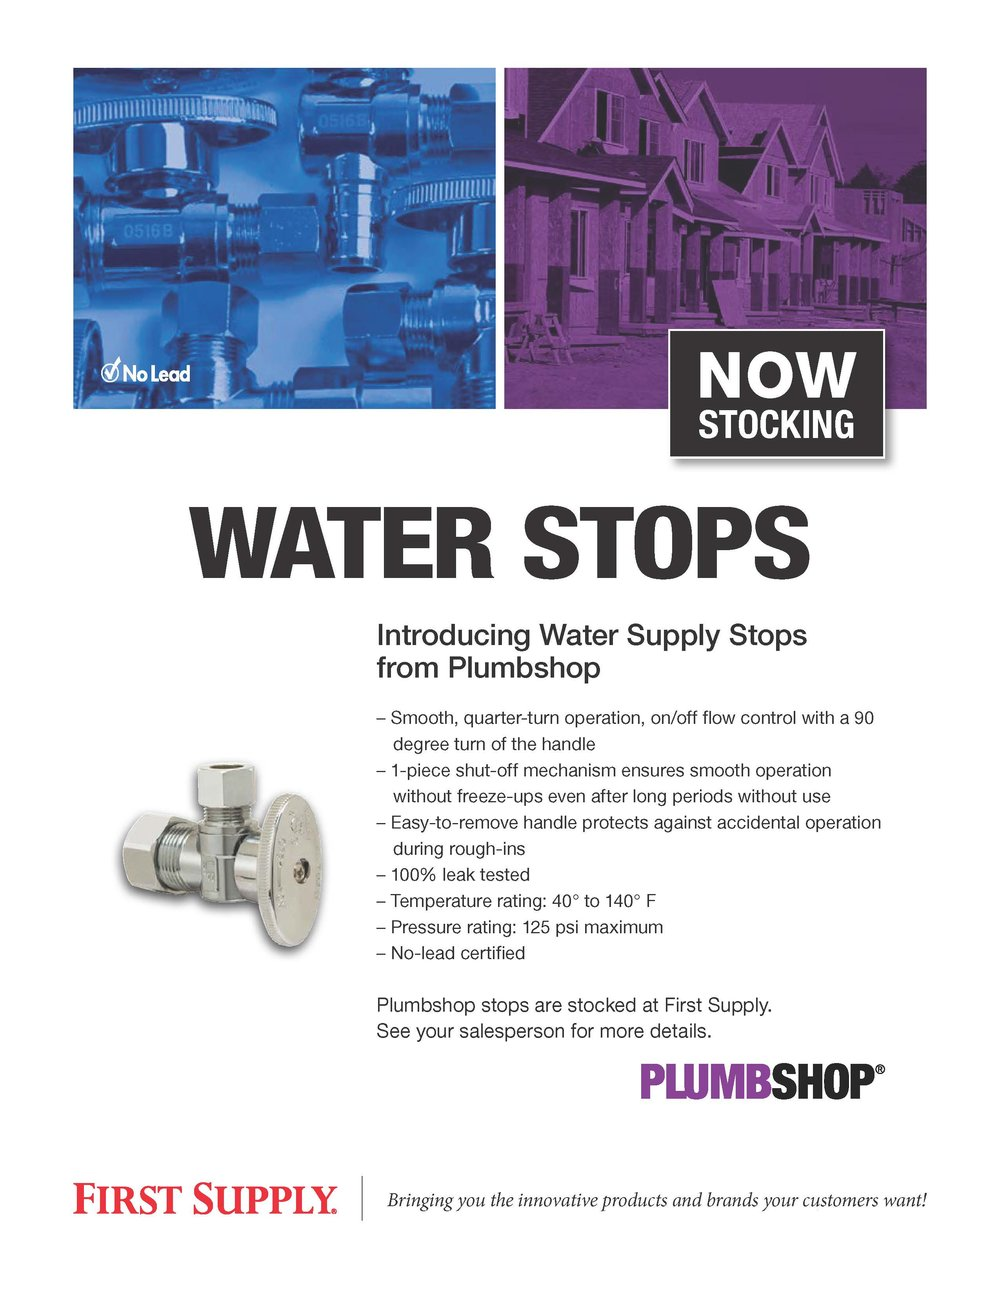 Plumbshop - Water Stops